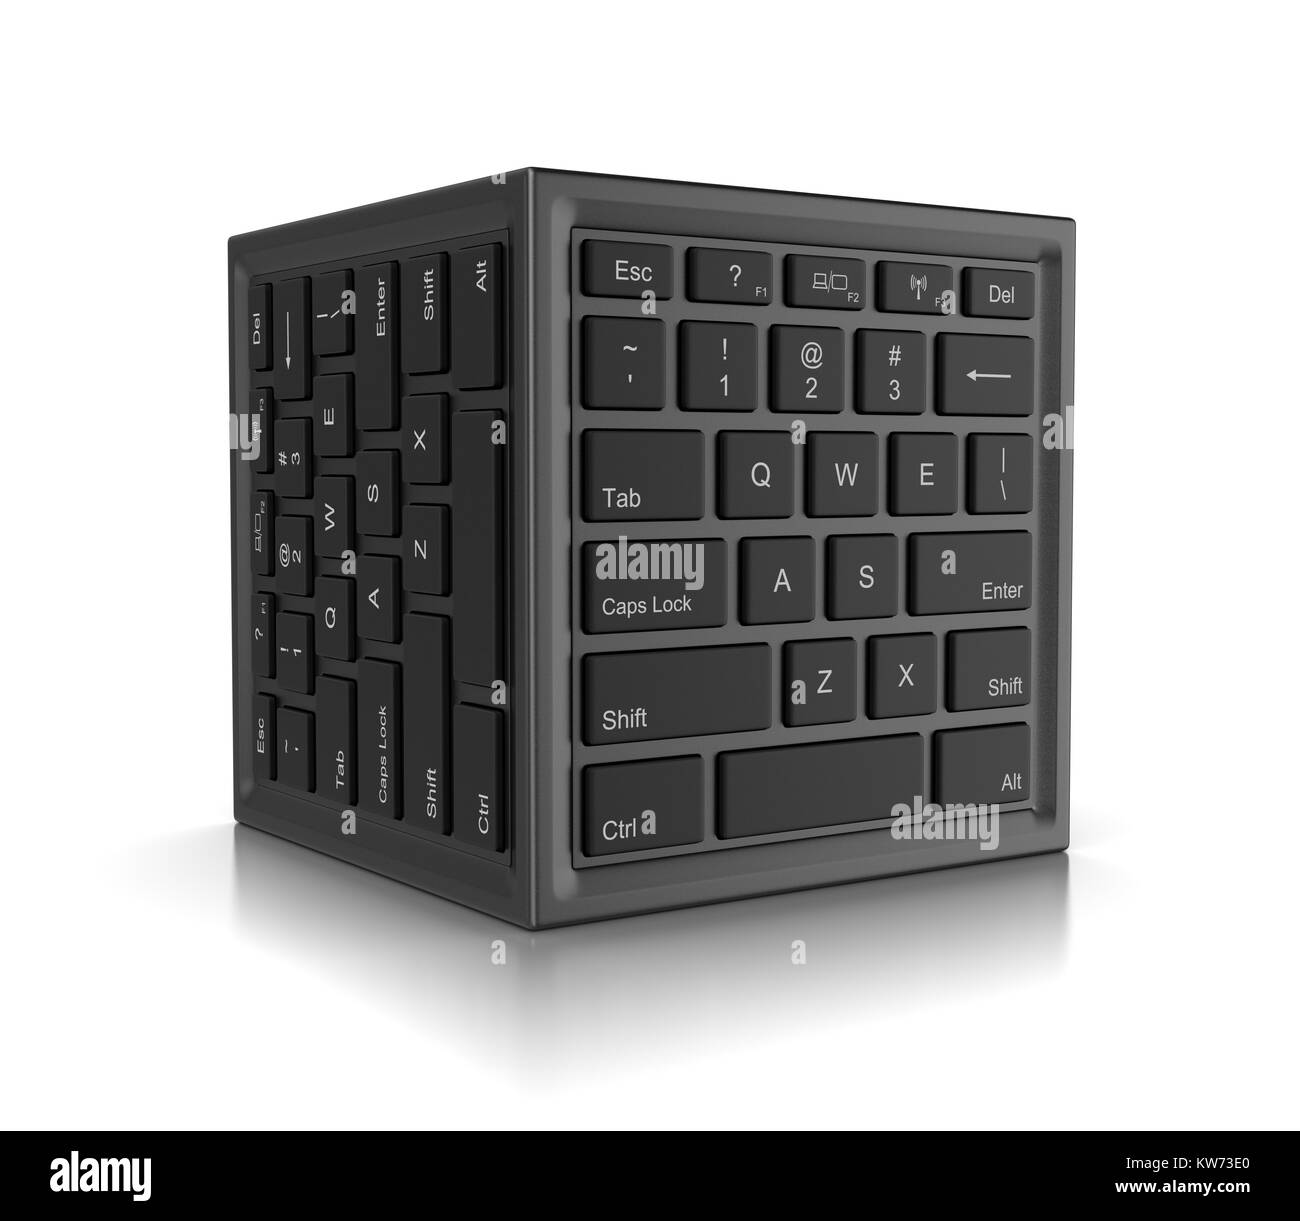 Cube Shape with Computer Keyboard on Faces 3D Illustration